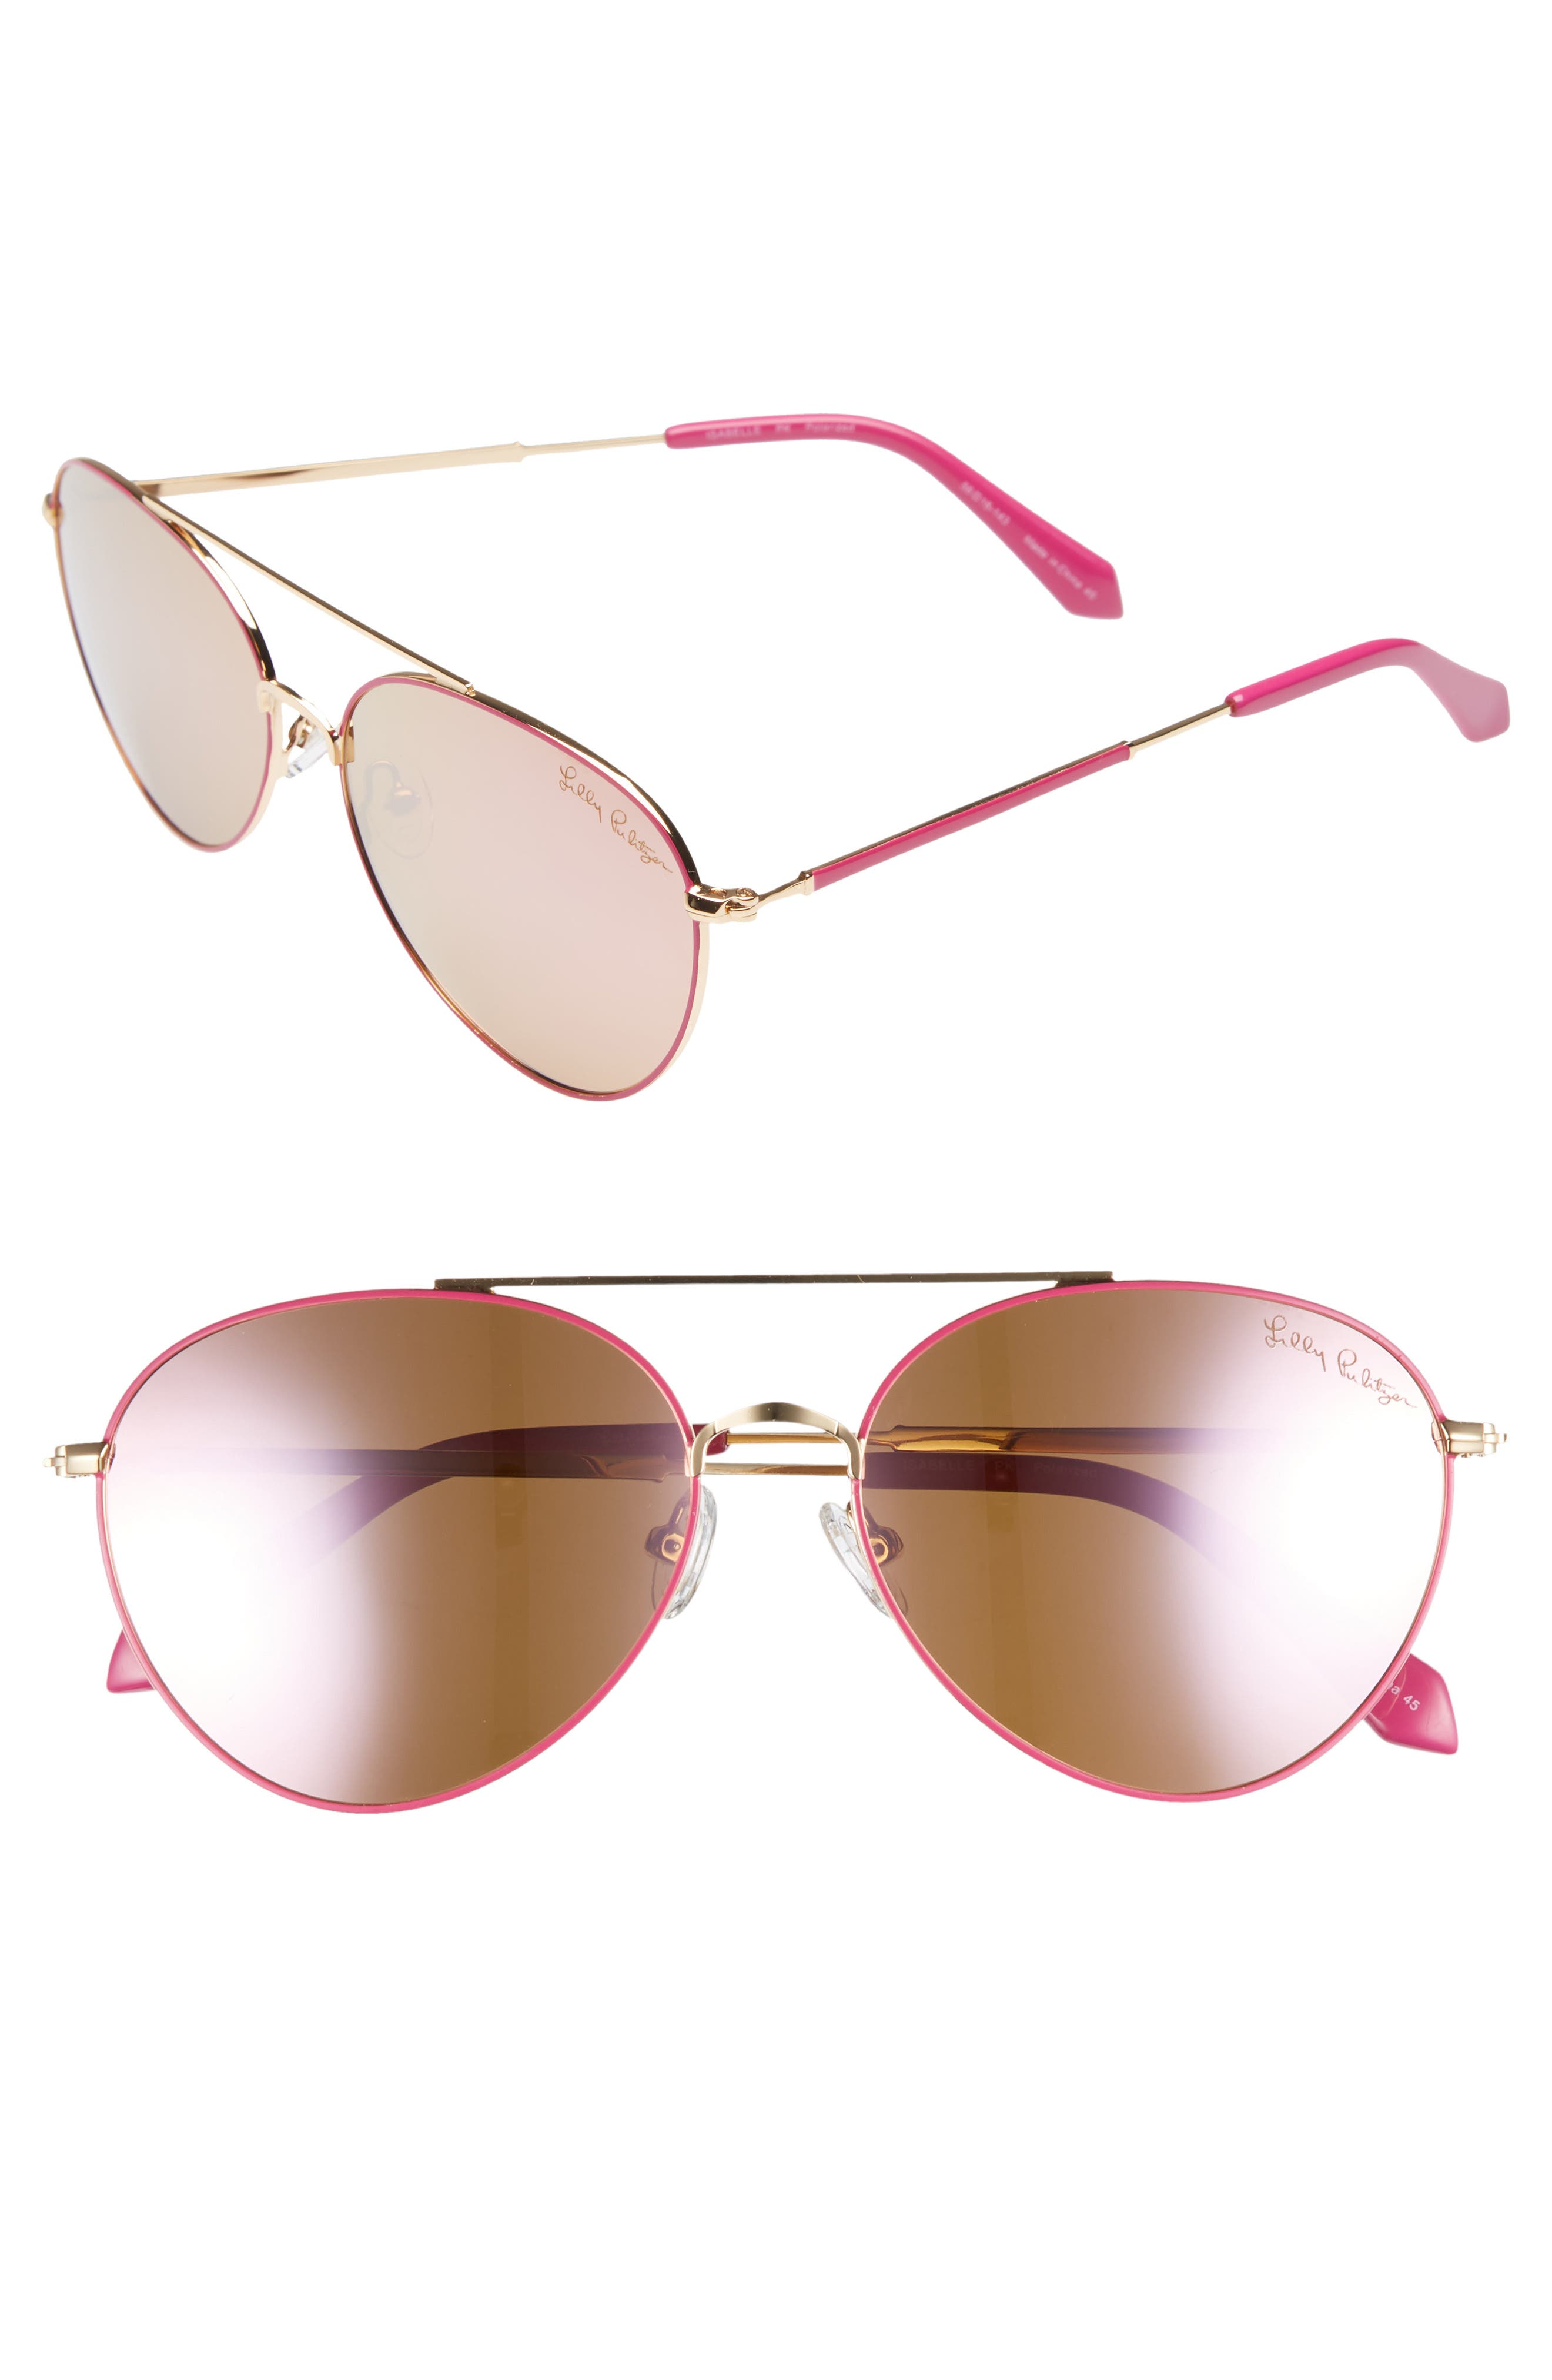 Isabelle 56mm Polarized Metal Aviator Sunglasses,                         Main,                         color, PINK/ PINK